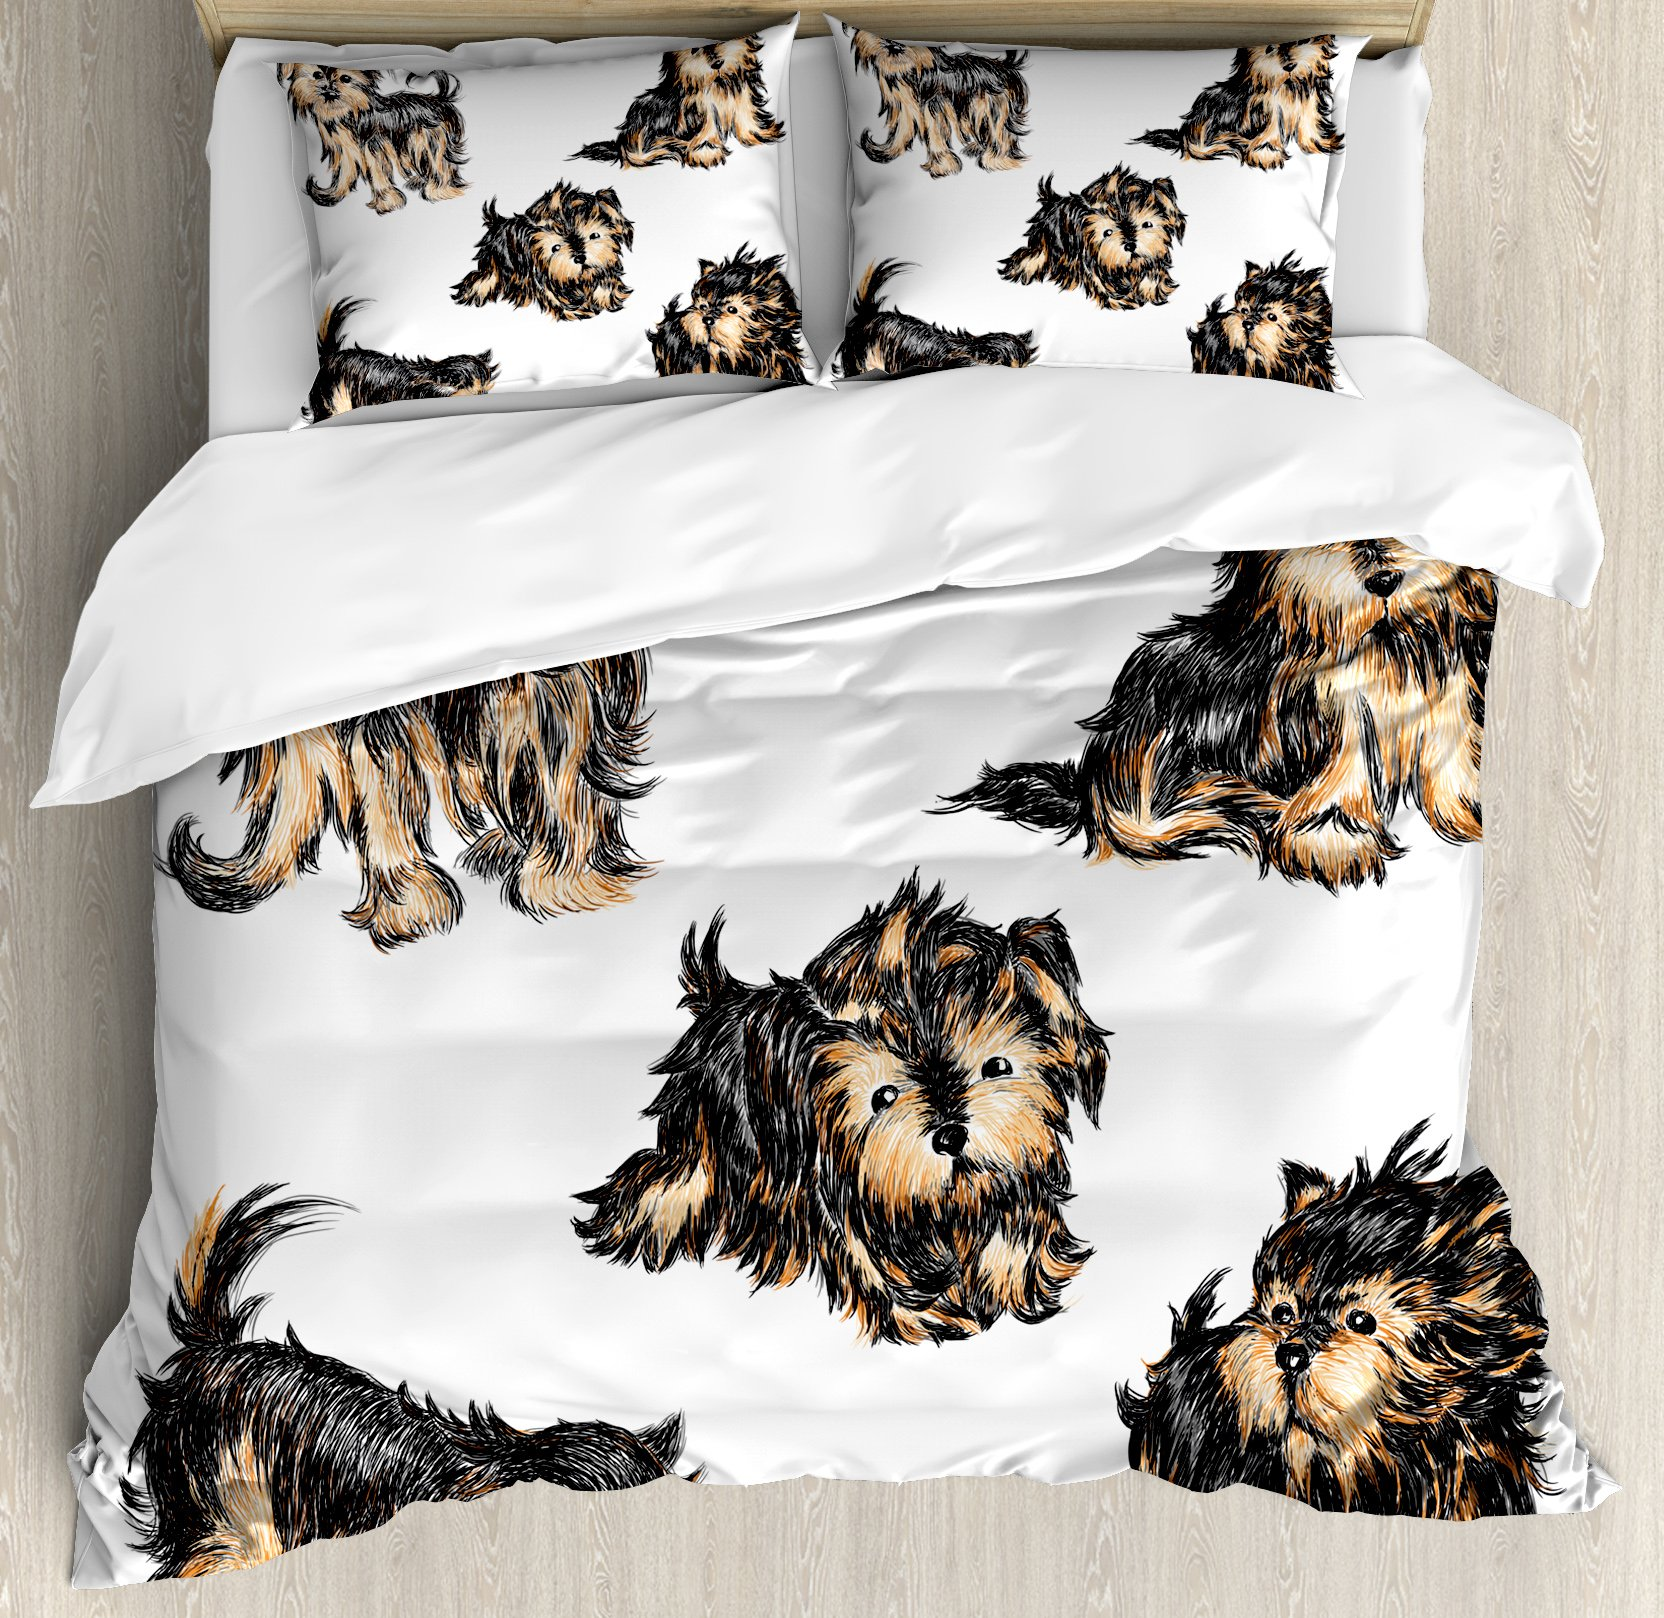 Ambesonne Yorkie Duvet Cover Set Queen Size, Hand Drawn Cute Yorkies Realistic Yorkshire Terrier Images Dog Love Cartoon, Decorative 3 Piece Bedding Set with 2 Pillow Shams, Light Coffe Black